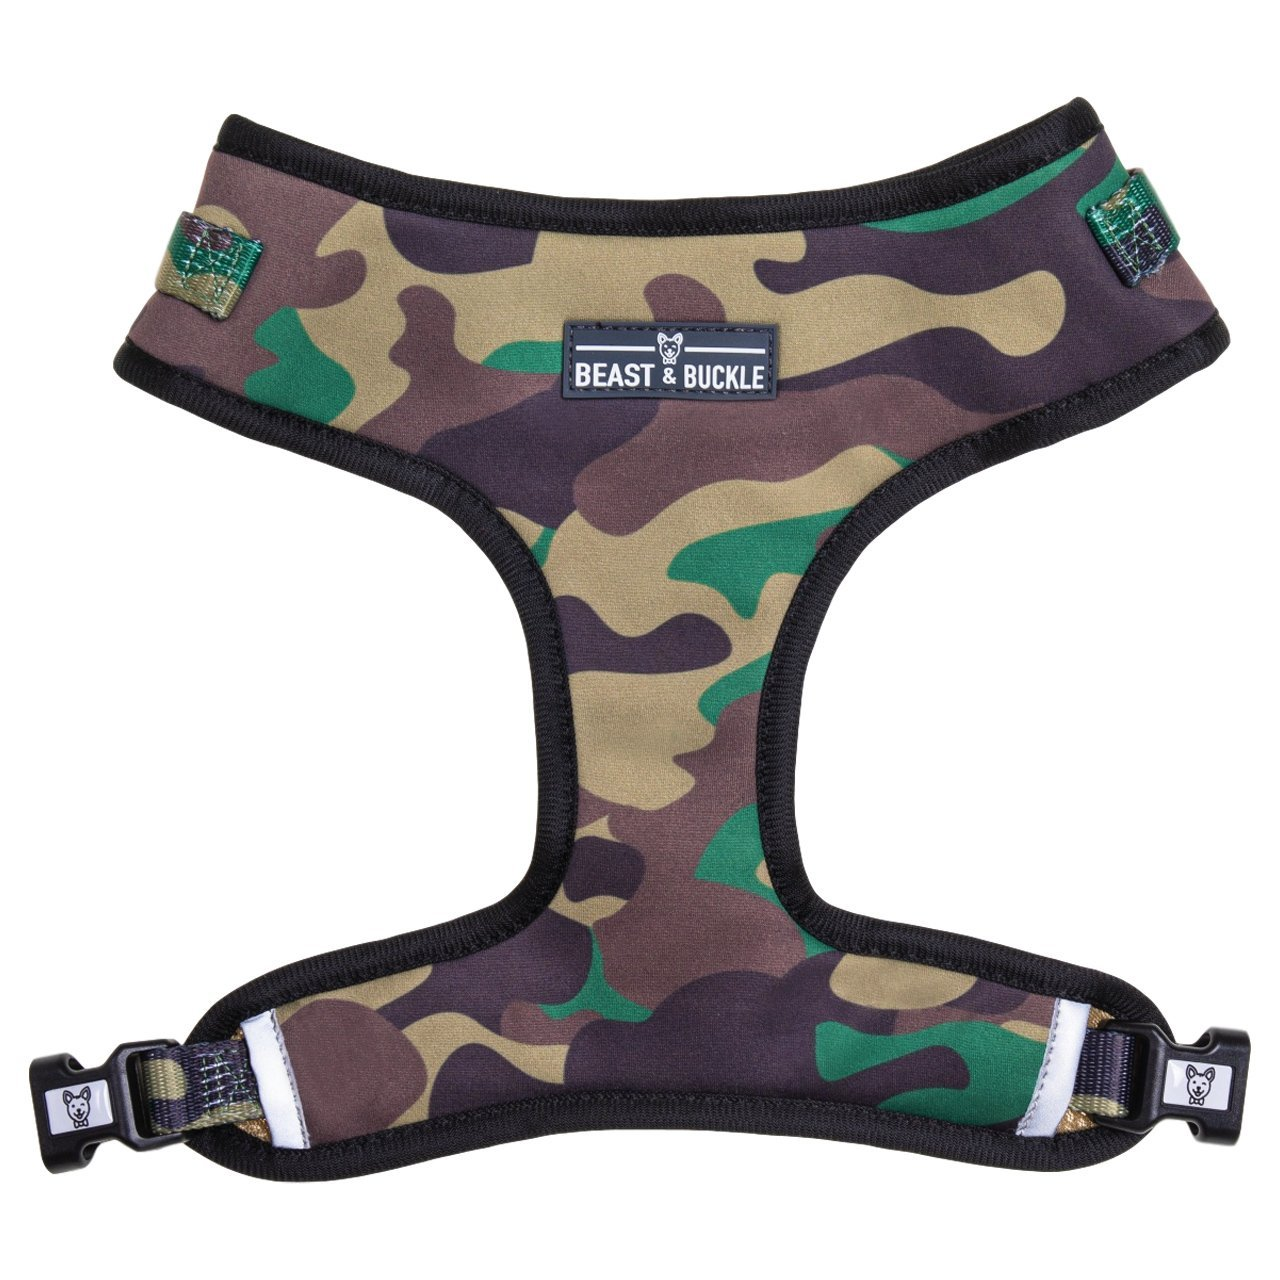 Camo Adjustable Dog Harness - Beast & Buckle